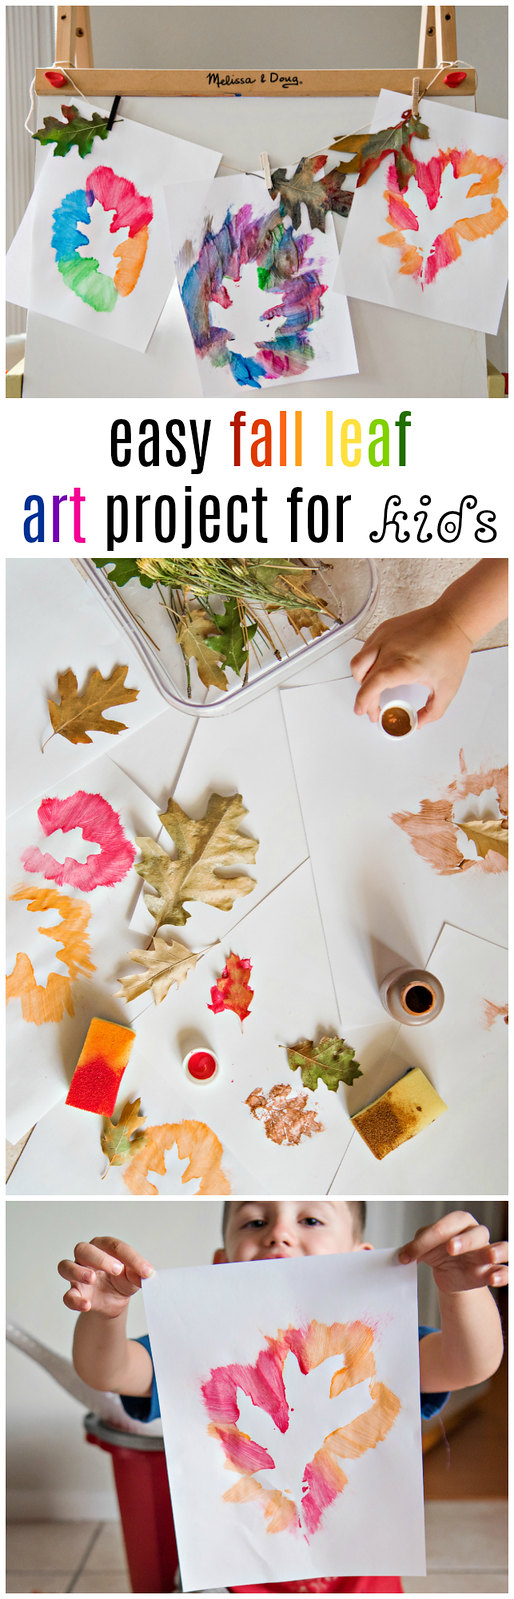 easy fall leaf painting project for kids